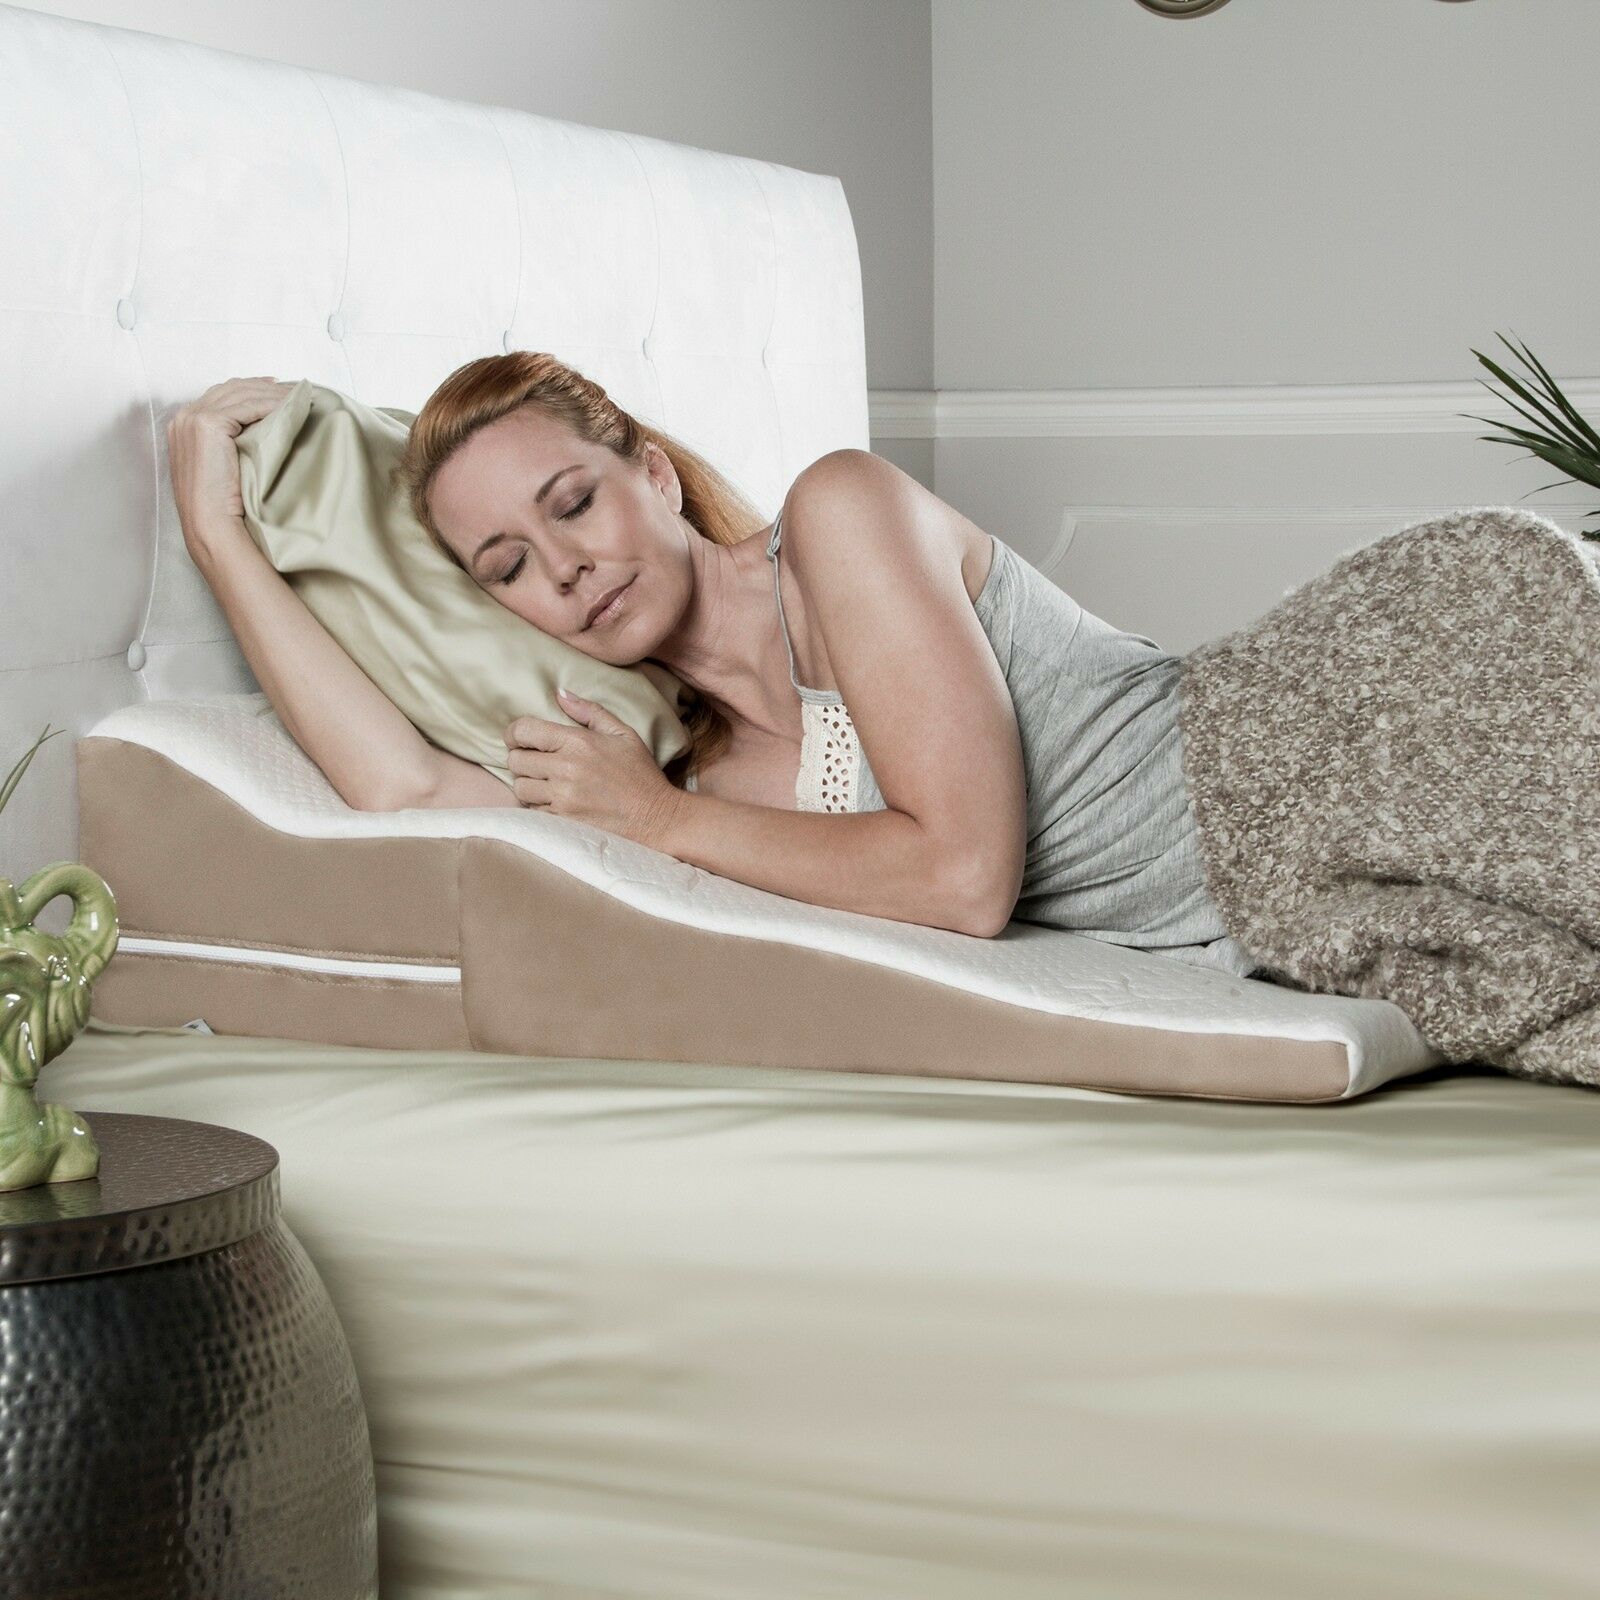 Avana Contourot Bed Wedge Pillow with Gel-Infused Cooling Memory Foam and Bamboo